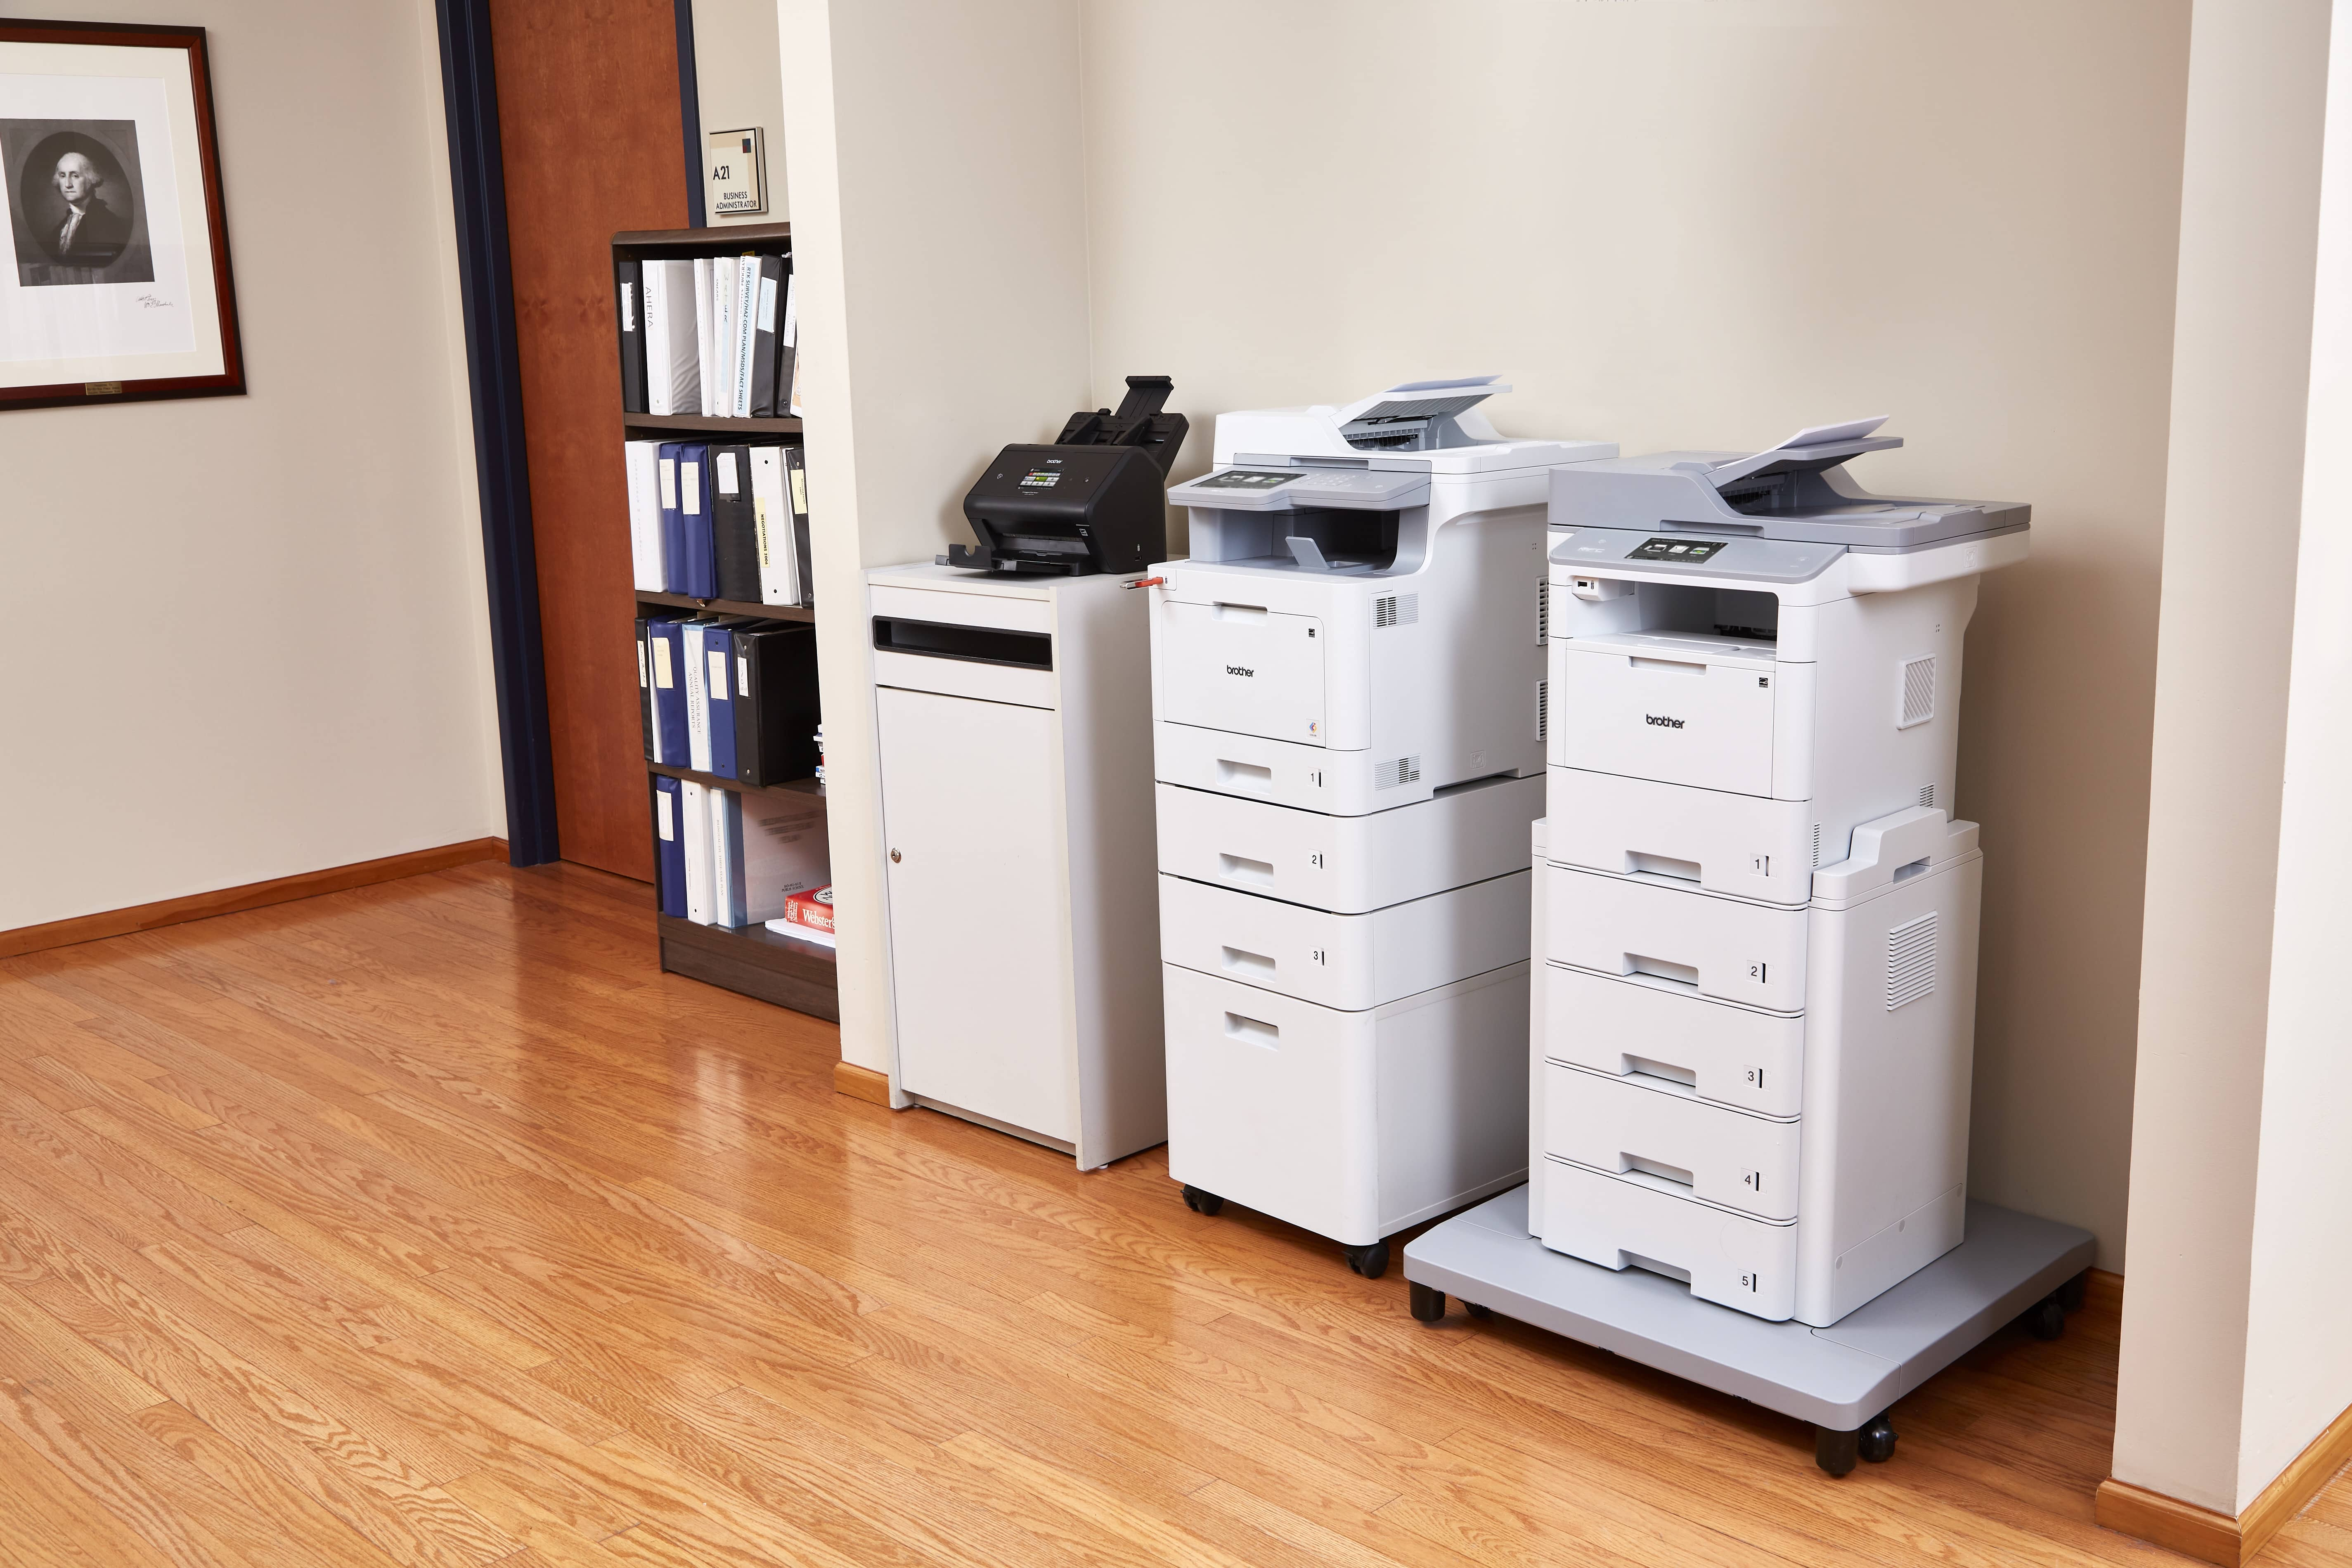 Brother printers, copiers, and MFP's in an office space.